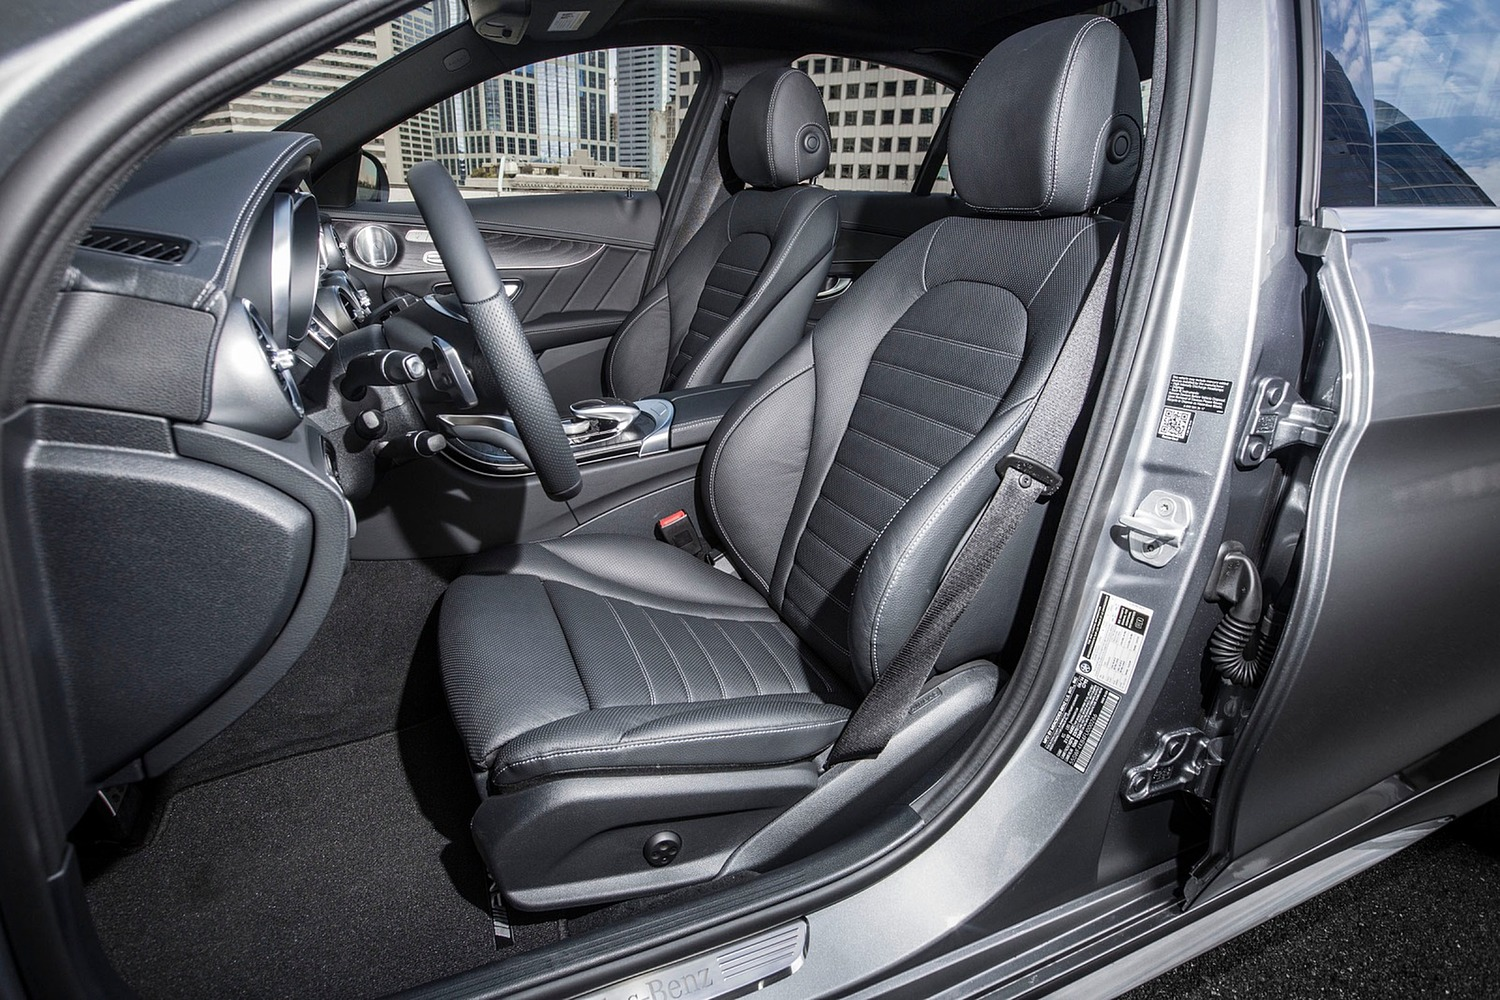 2018 Mercedes-Benz C-Class C 300 4MATIC Sedan Interior Shown